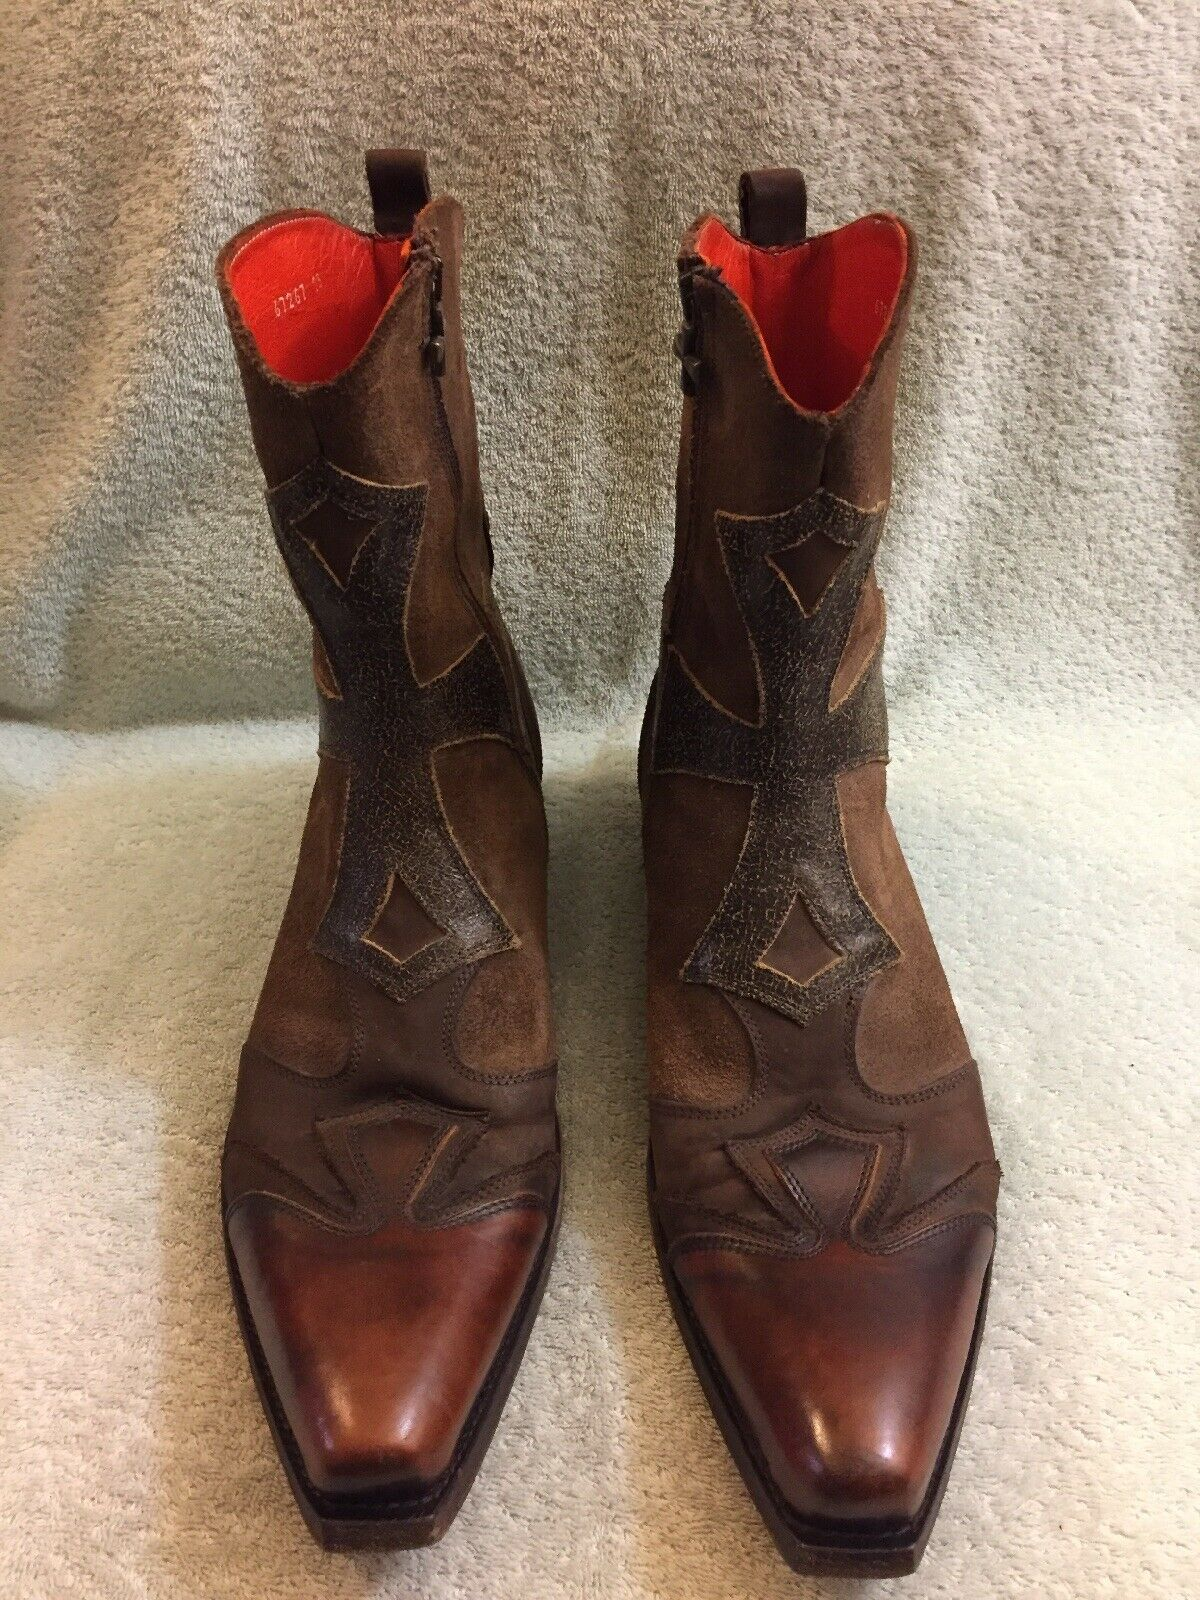 Mark Nason Dallas Men's Boots Brown Leather Distressed Caramel 67267 Size 13